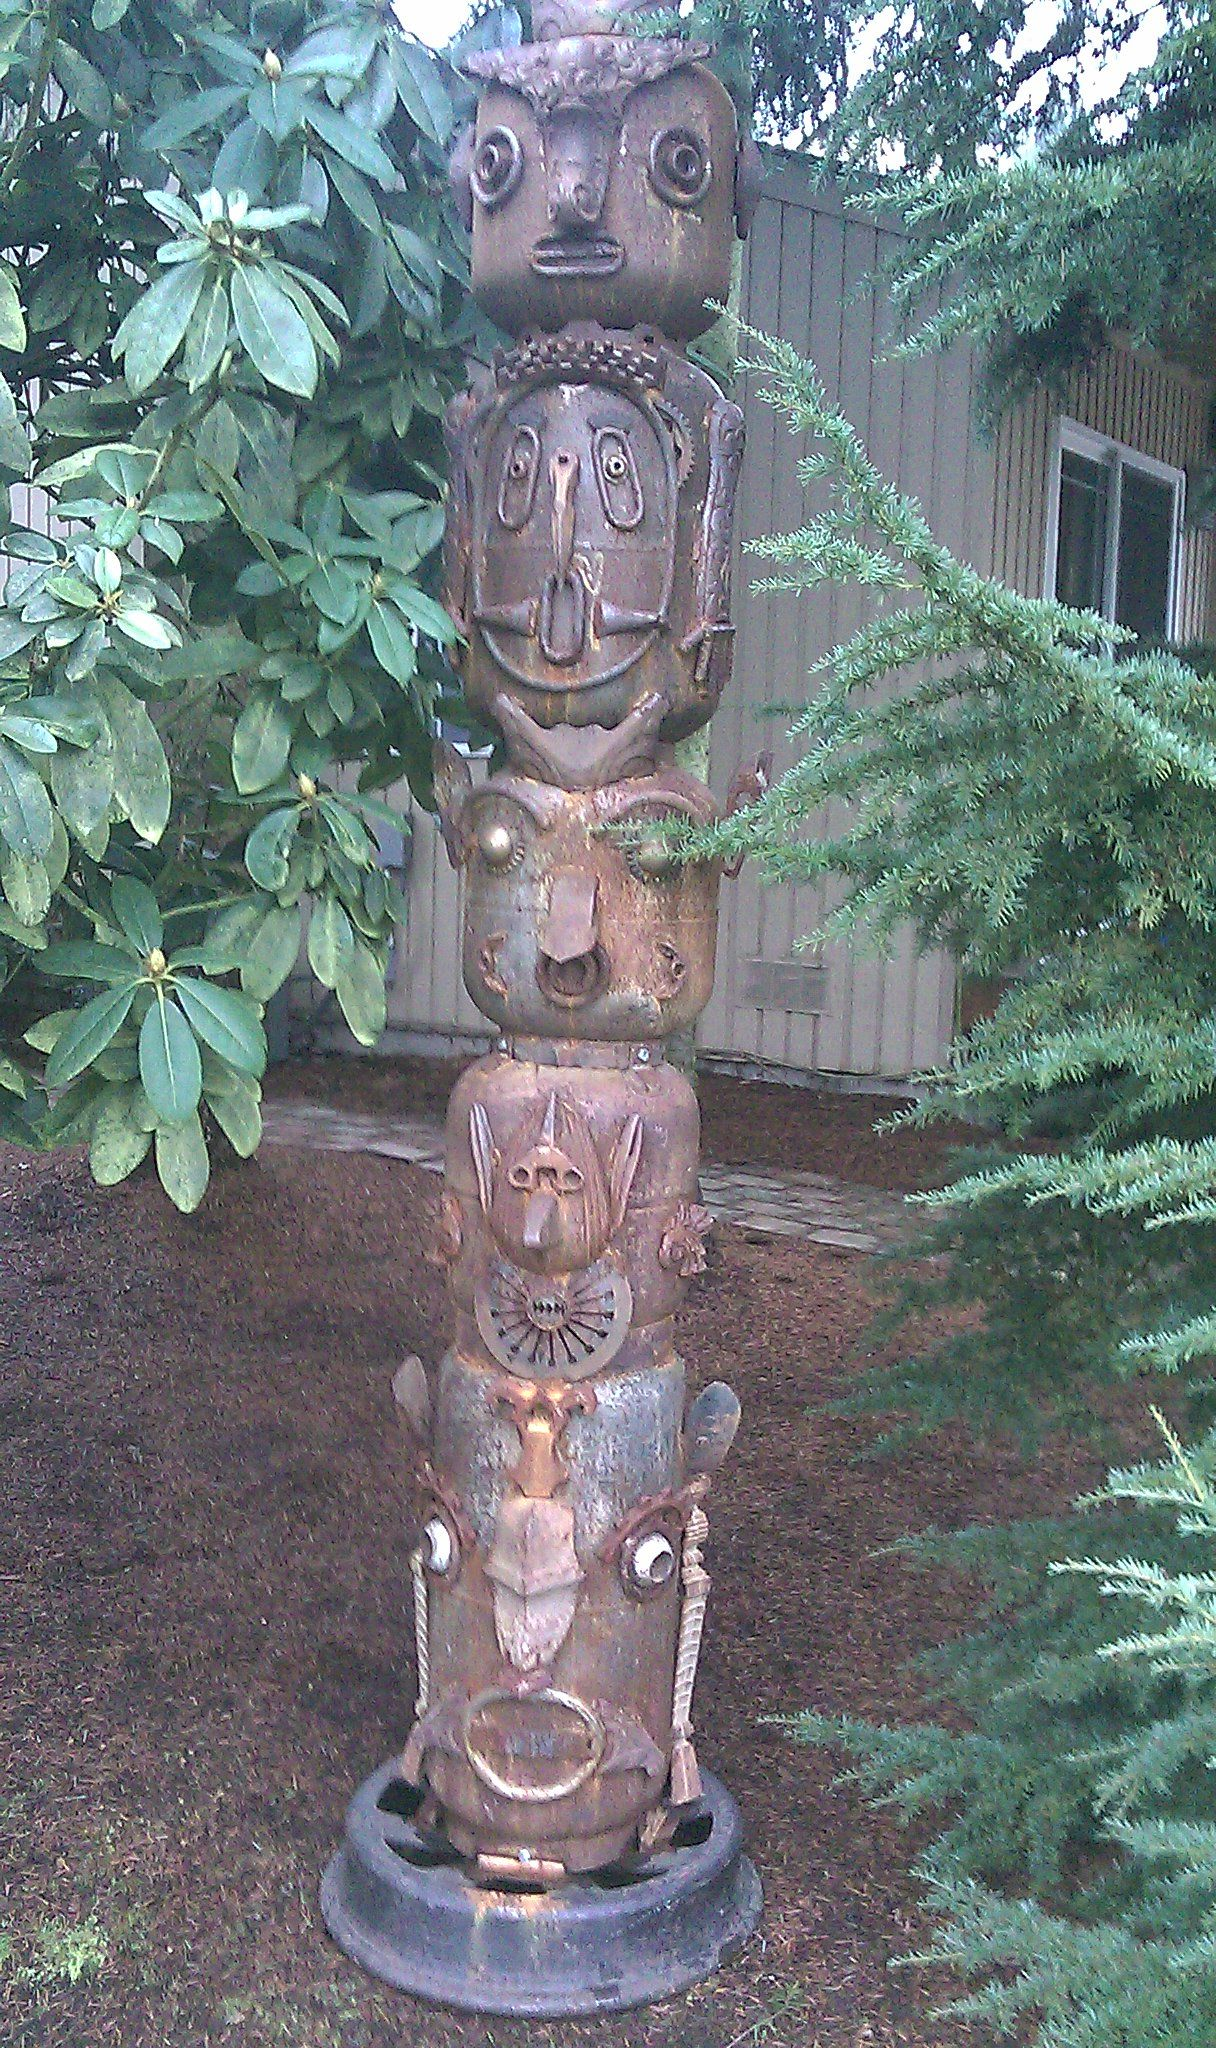 Totem pole made out of found junk and empty propane tanks (Issaquah, Wa).